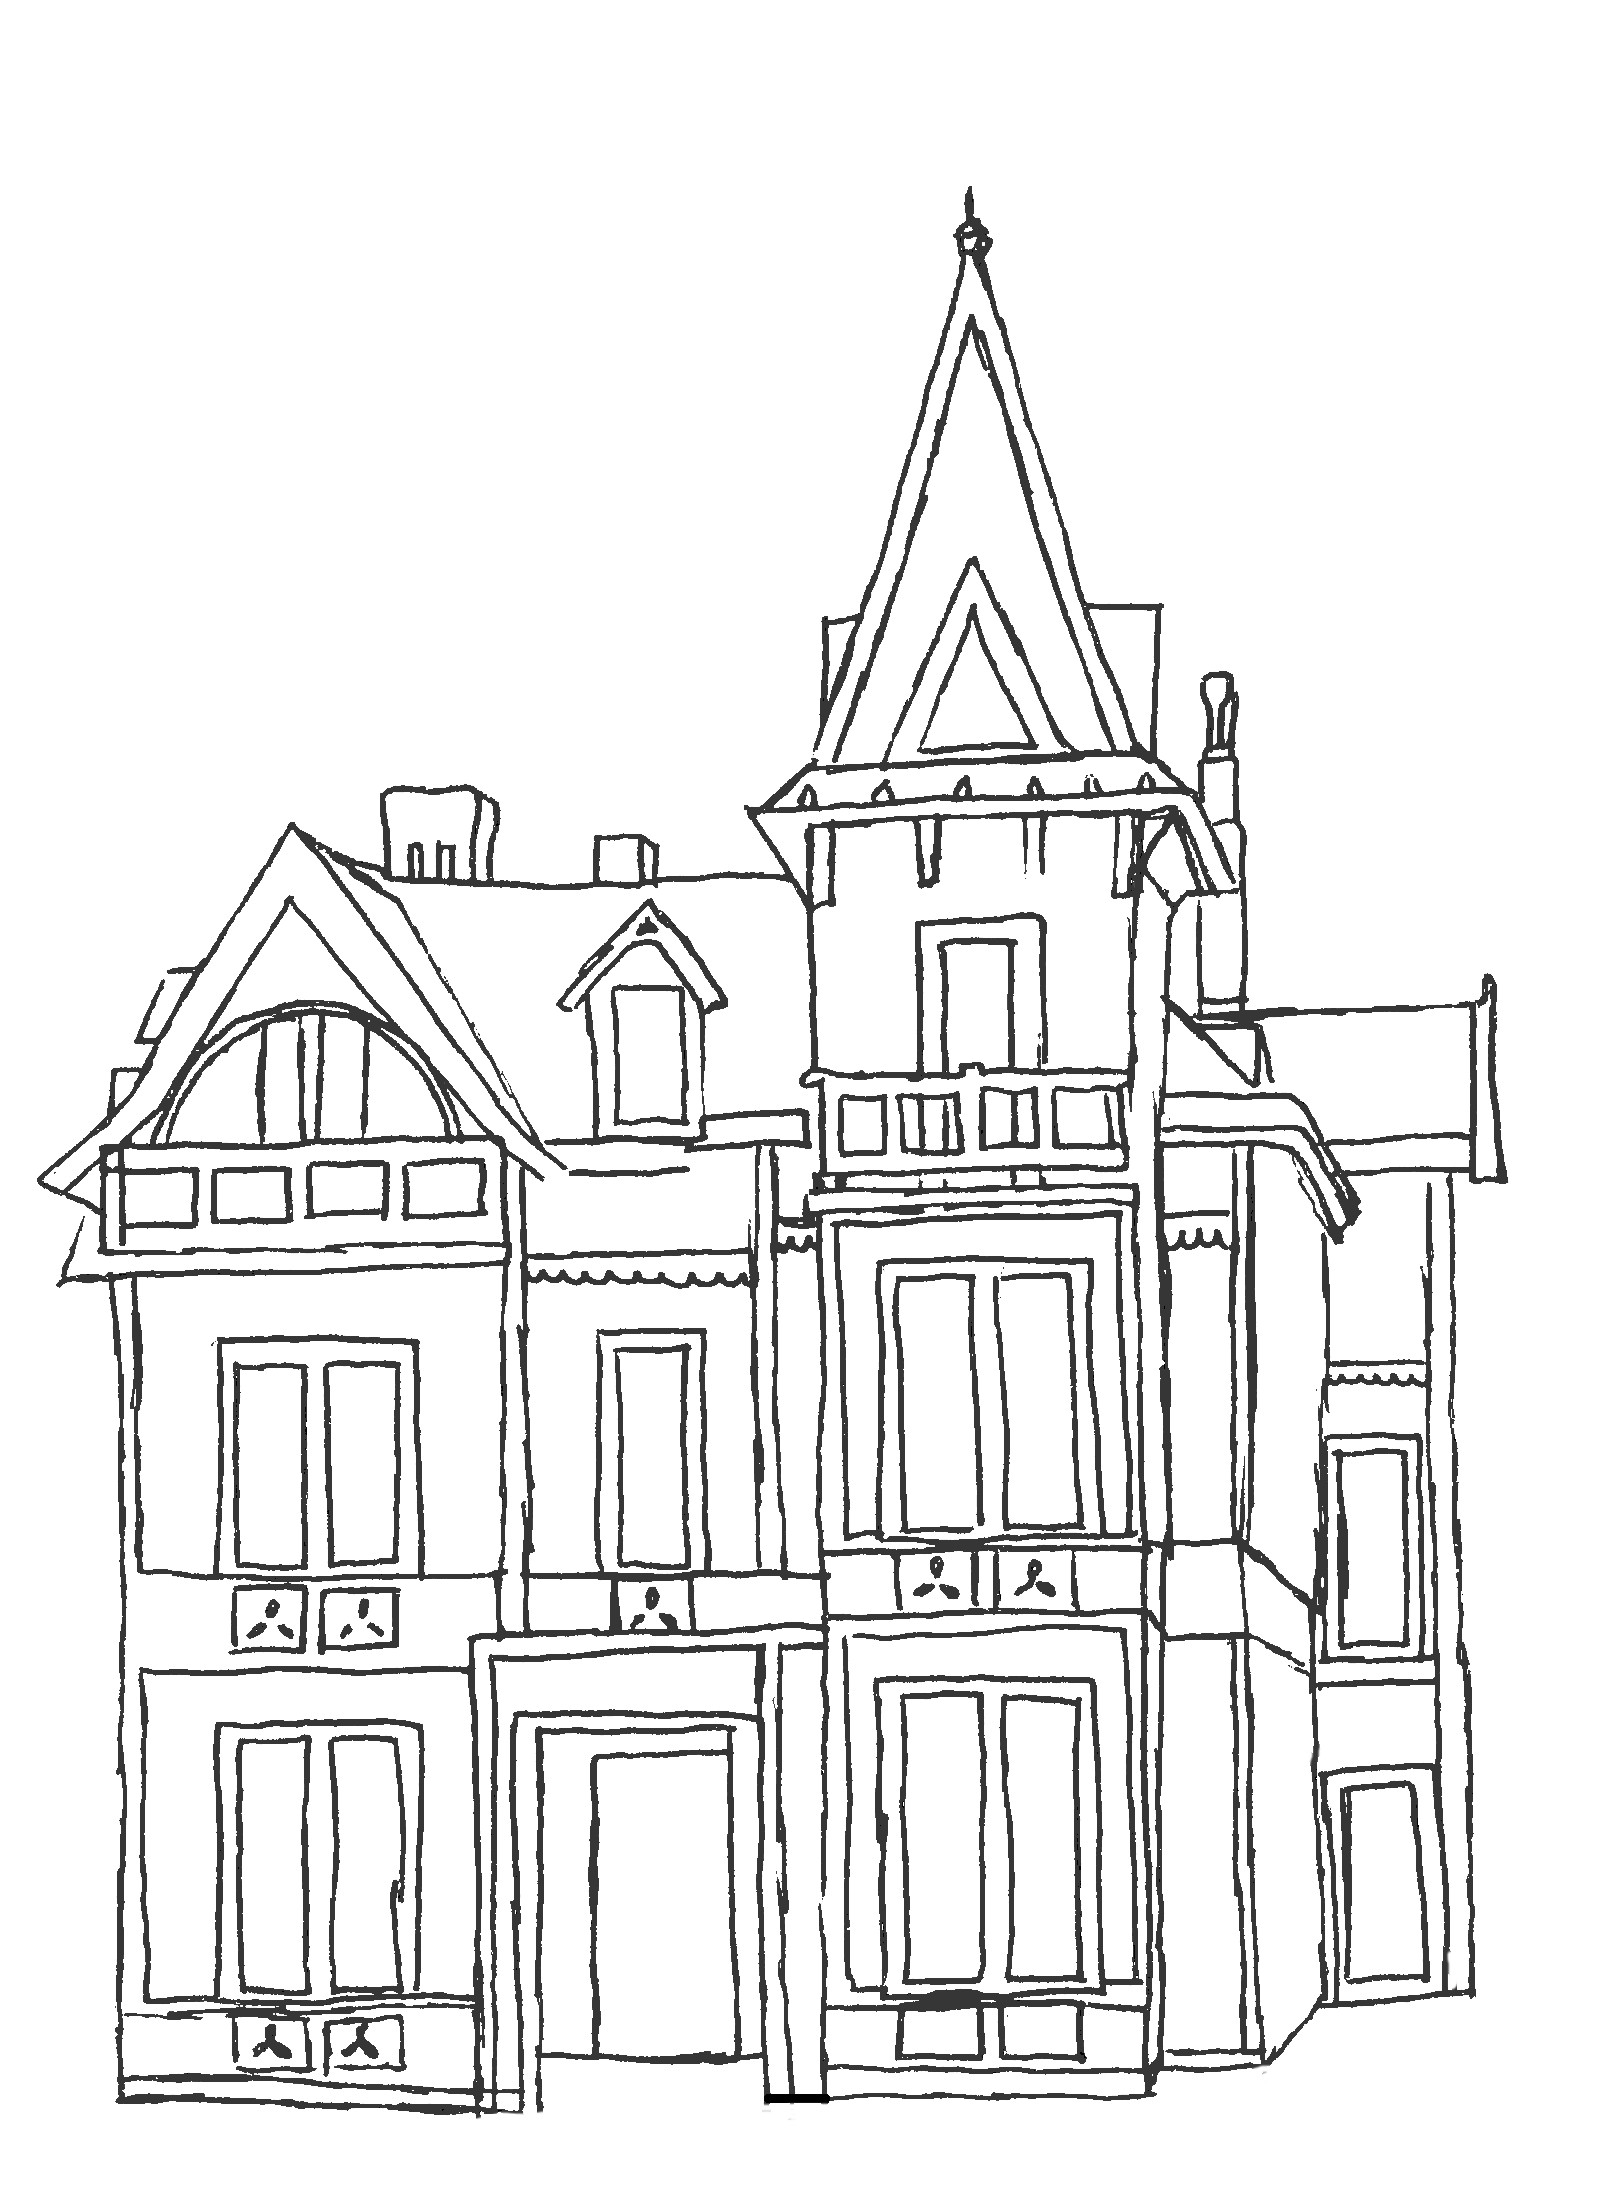 Filegeorge stone house sketch jpg